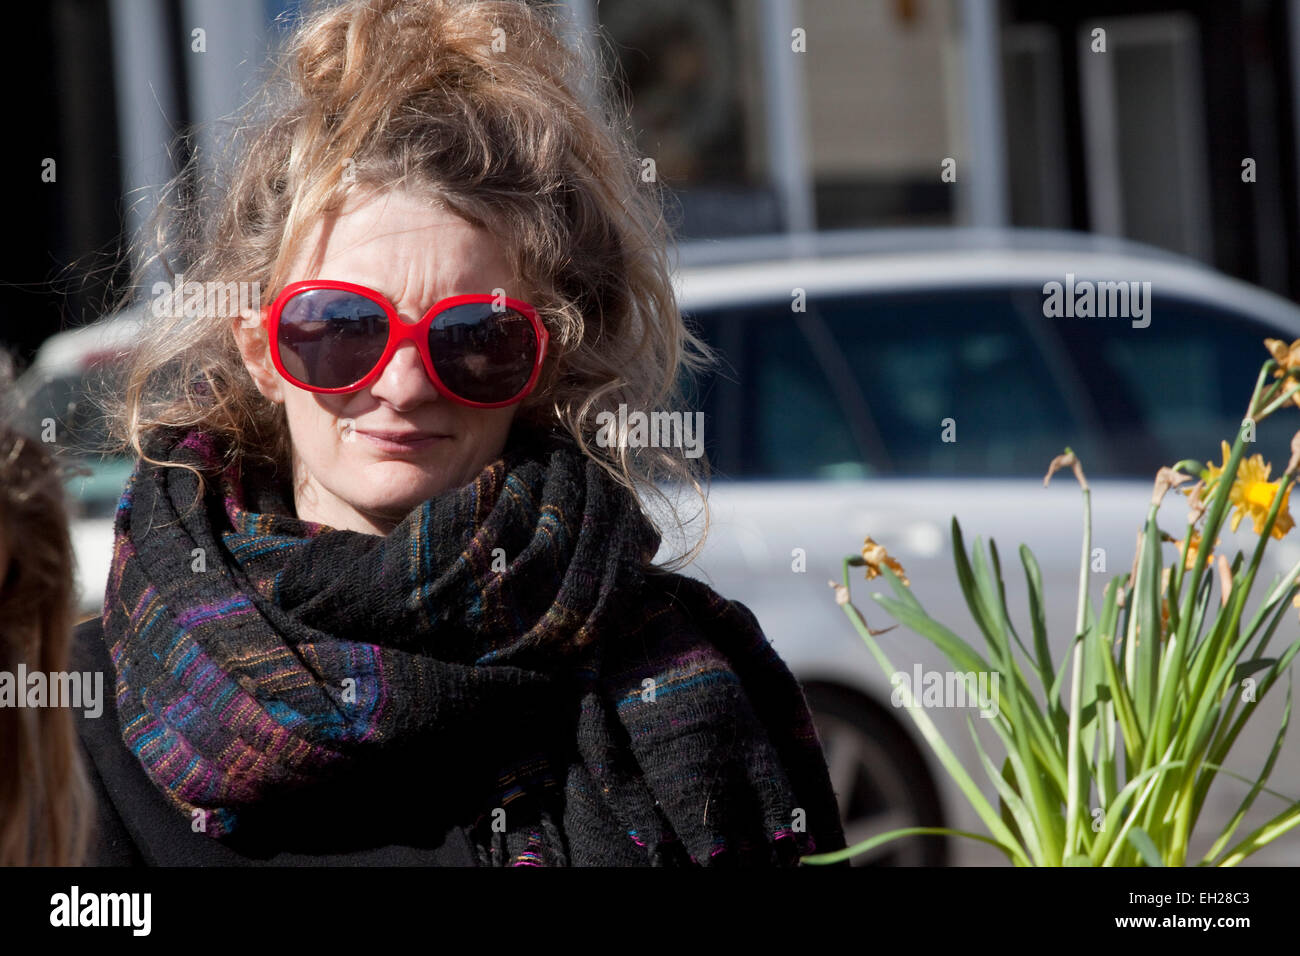 1aee8743668 Young woman looks at the camera through enormous red framed sunglasses -  Stock Image